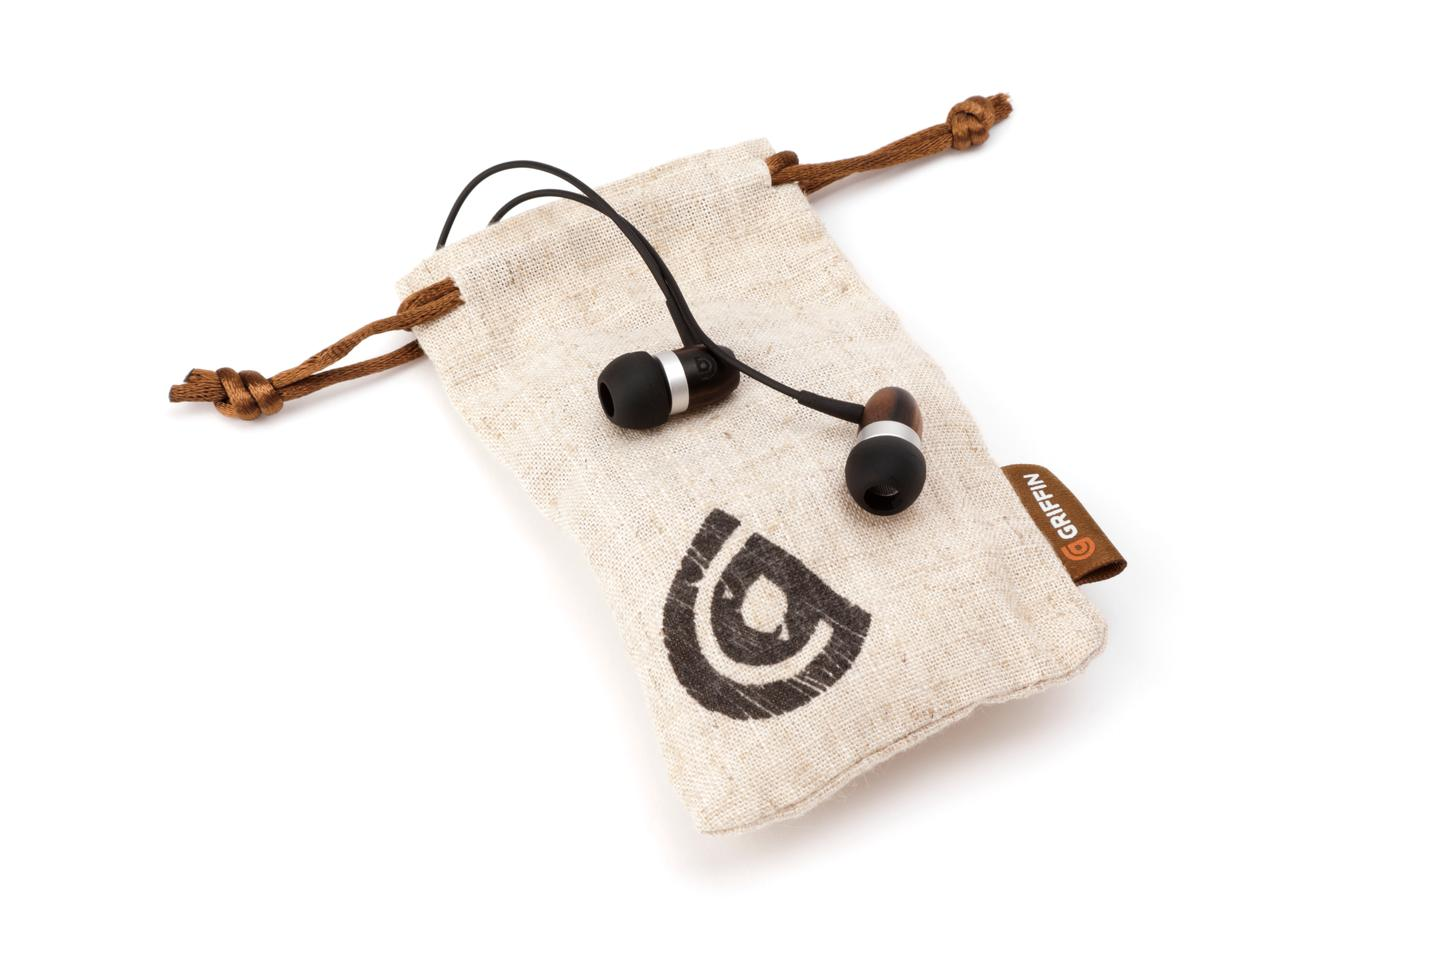 The WoodTones Earbuds are supplied with a drawstring carrying pouch made from natural hemp